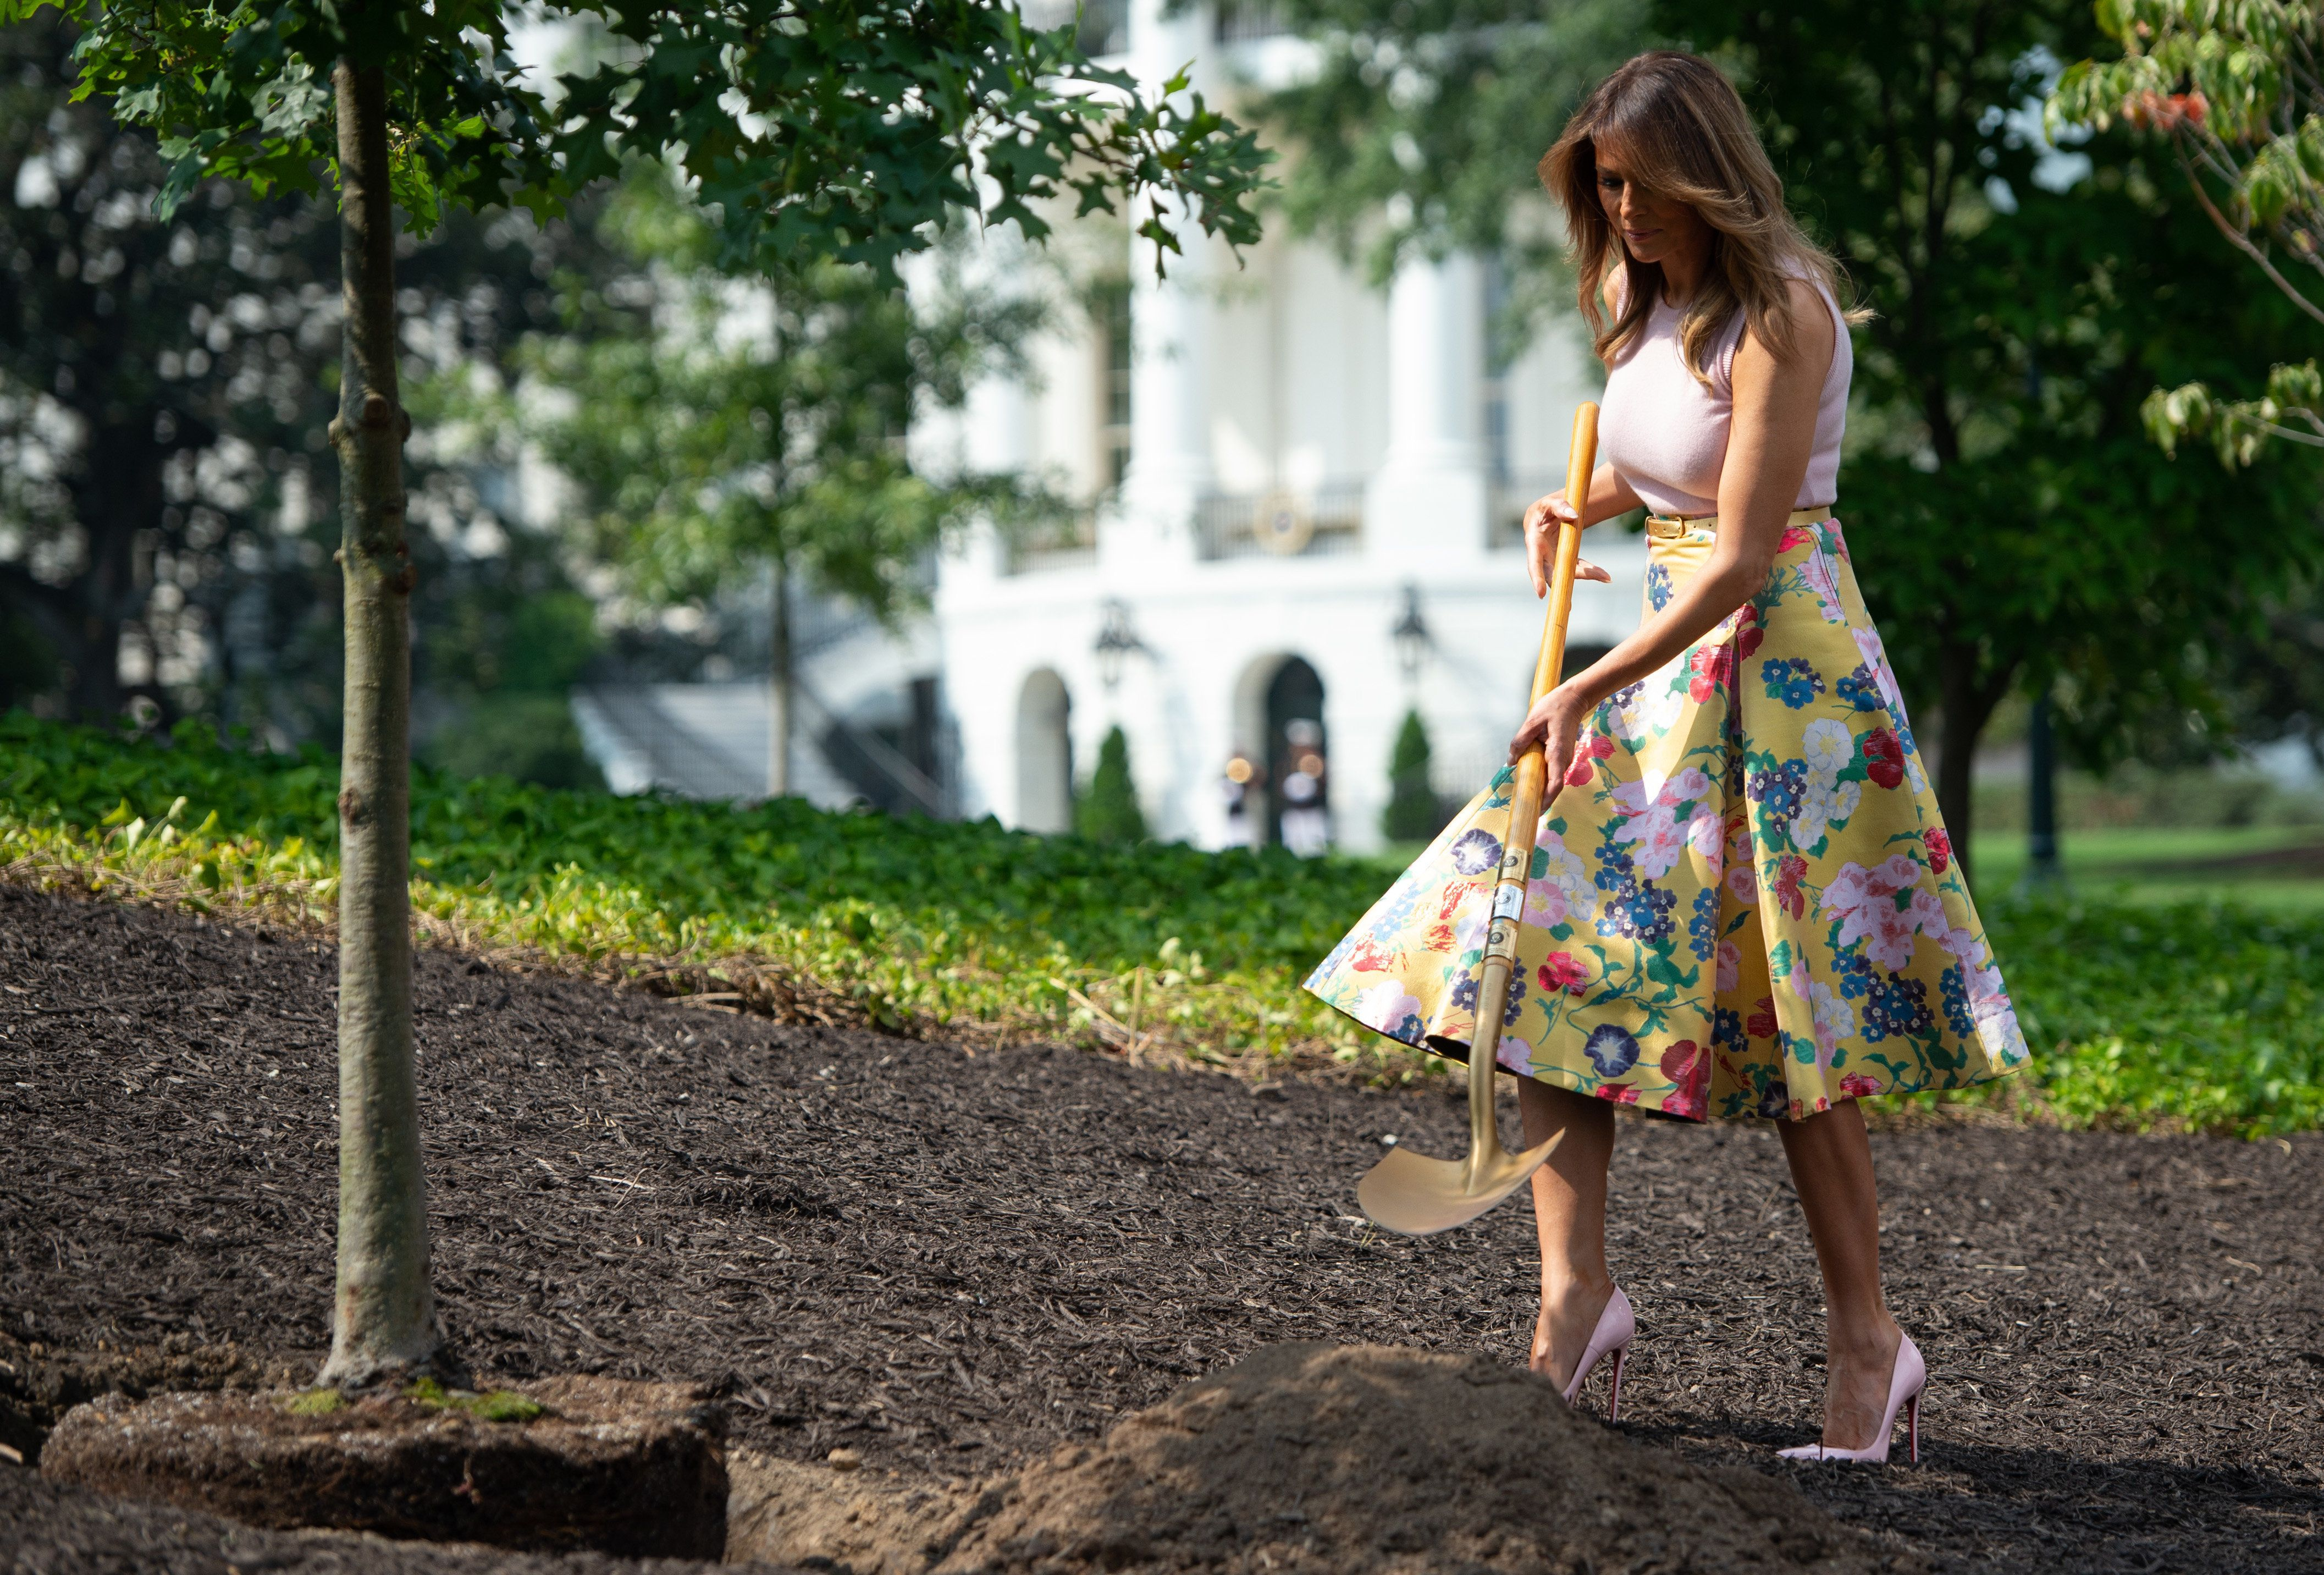 US First Lady Melania Trump participates in a tree planting ceremony of a sapling from the original Eisenhower Oak tree that was removed from the grounds last year, on the South Lawn of the White House in Washington, DC on August 27, 2018, (Photo by SAUL LOEB / AFP)        (Photo credit should read SAUL LOEB/AFP/Getty Images)